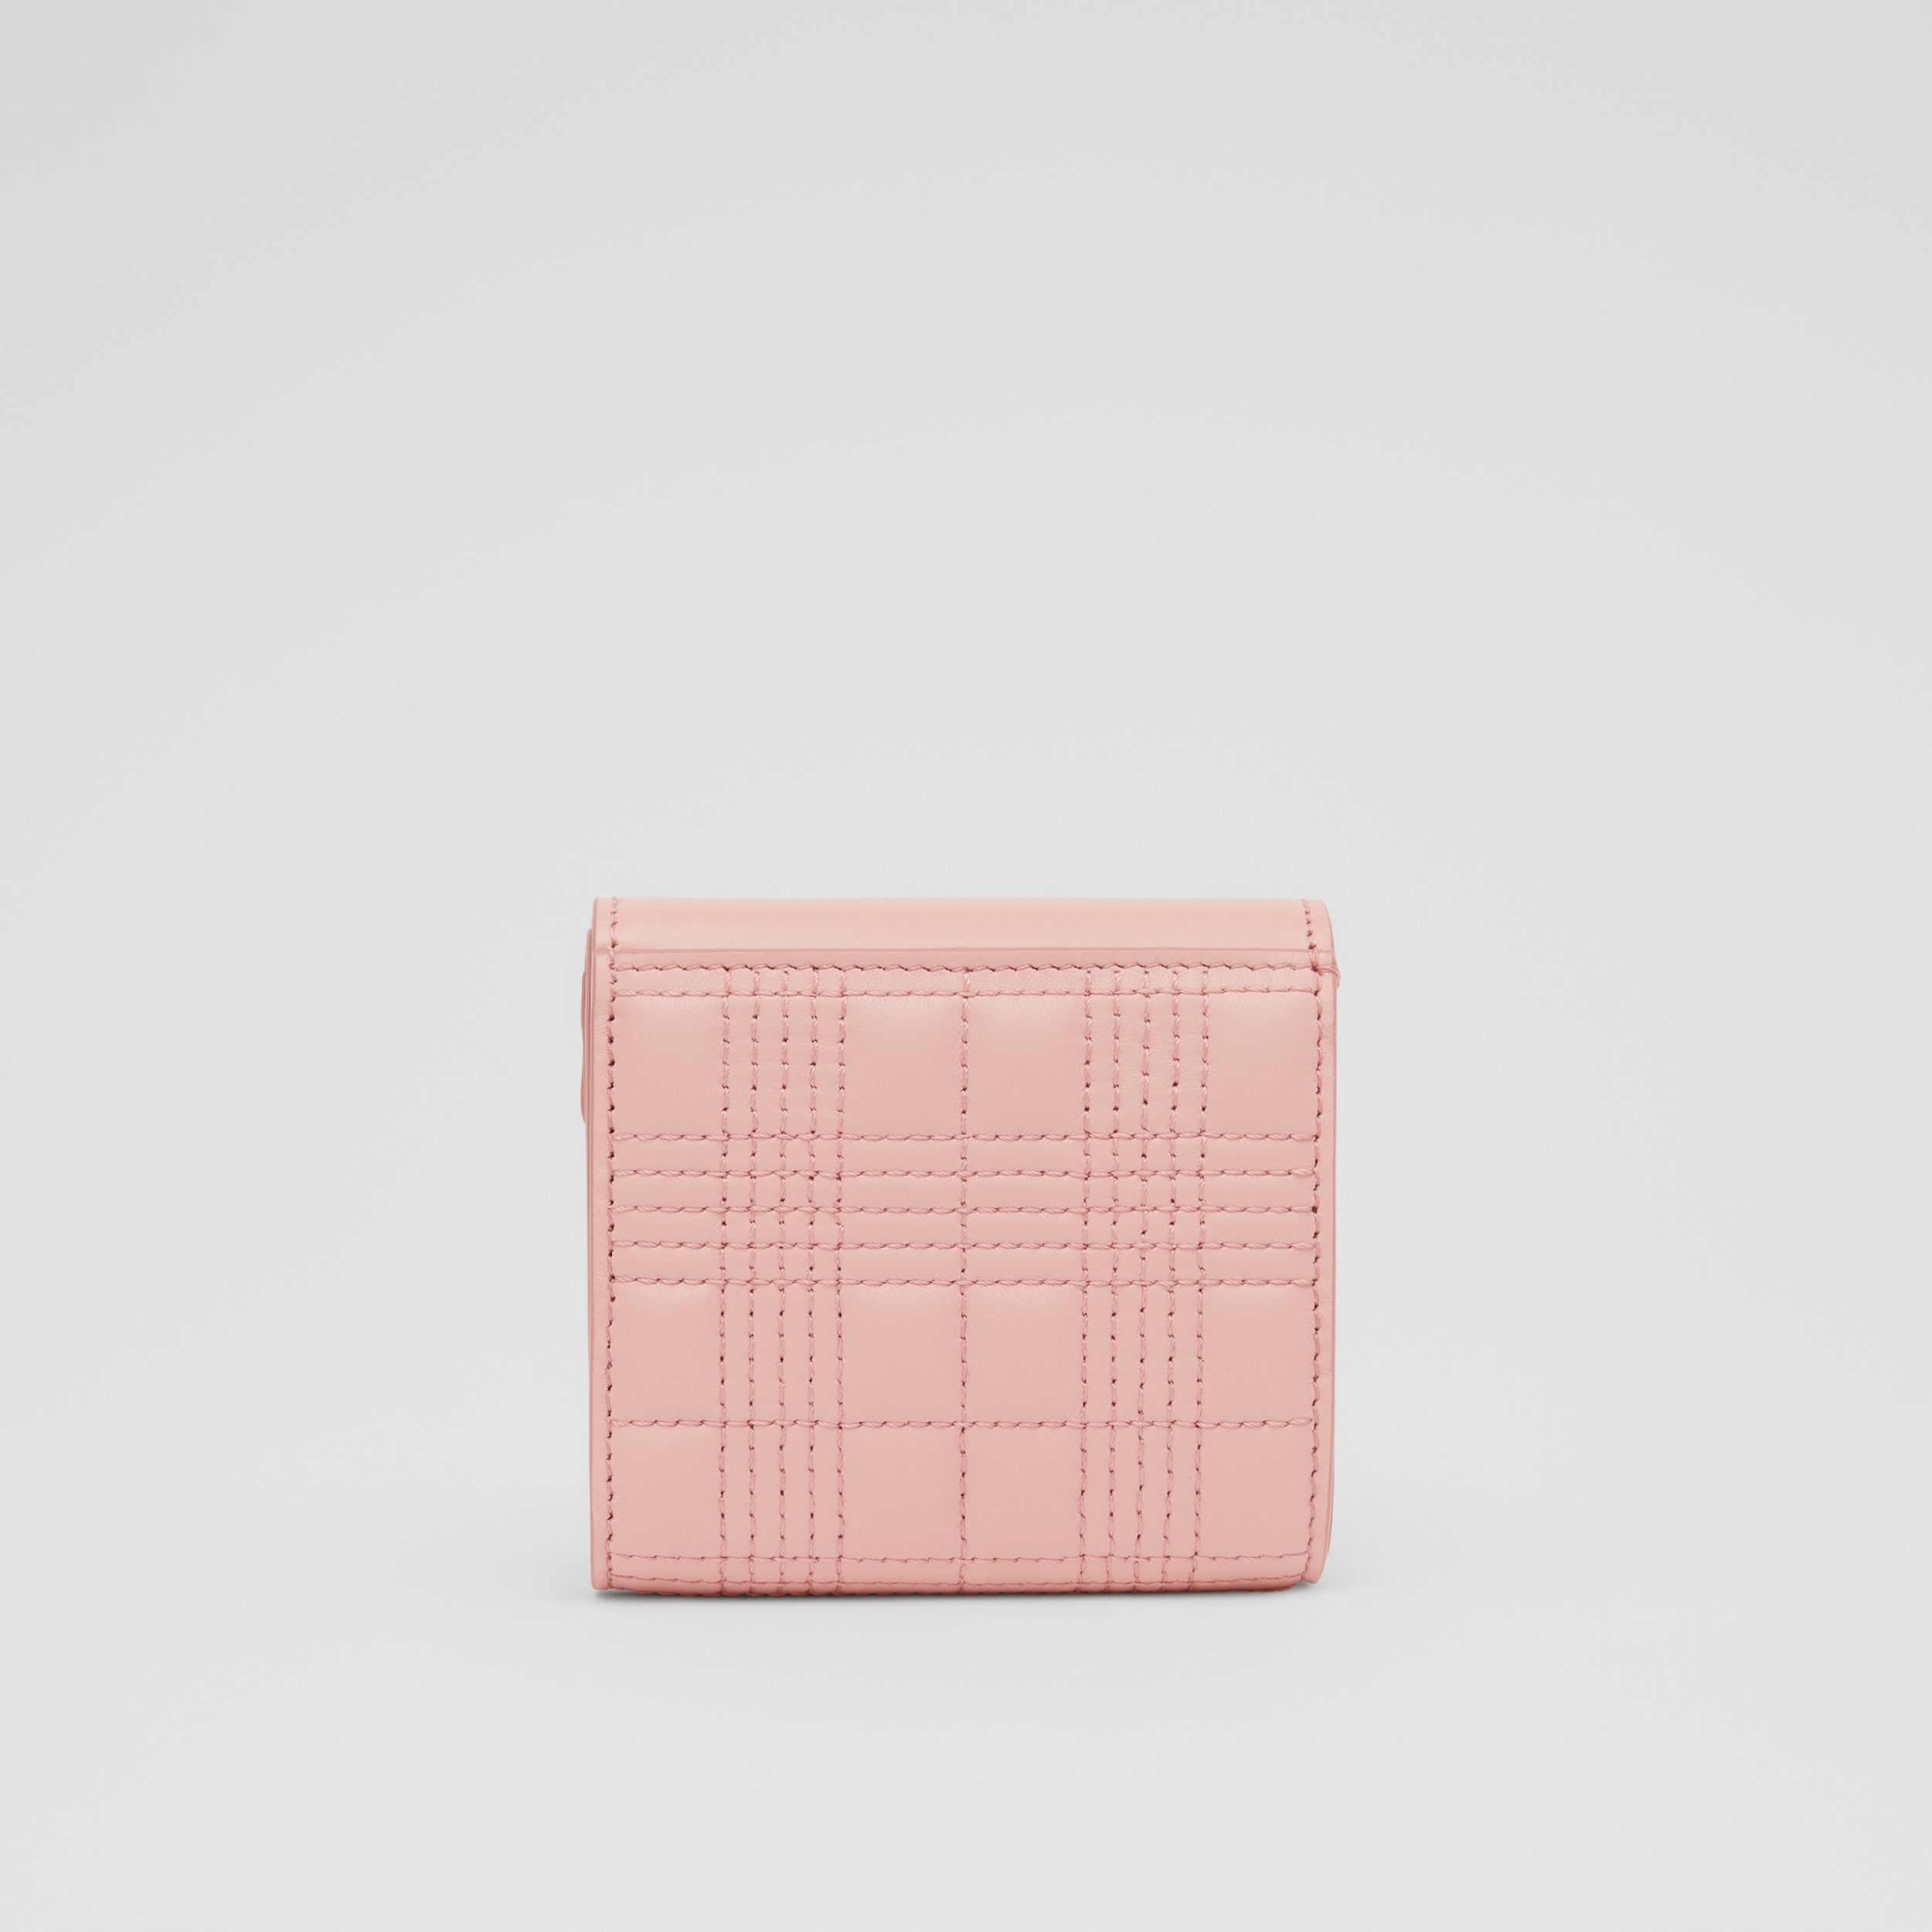 Quilted Lambskin Folding Wallet in Blush Pink - Women | Burberry Hong Kong S.A.R. - 4